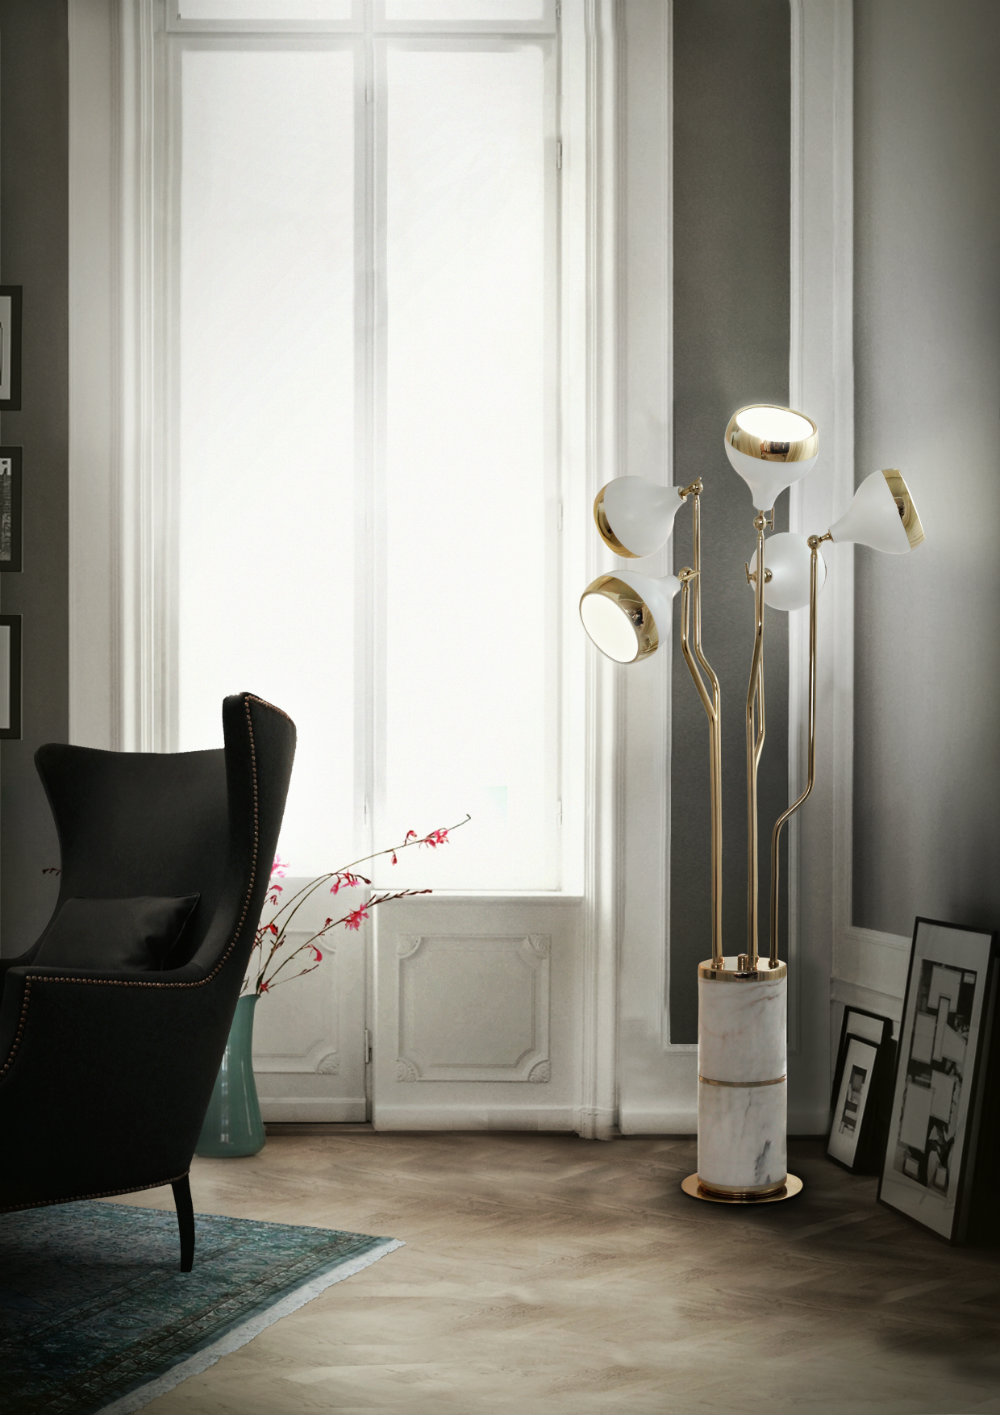 Innovative Modern Floor Lamps For Your Home Decor! 4 modern floor lamps Innovative Modern Floor Lamps For Your Home Decor! Innovative Modern Floor Lamps For Your Home Decor 4